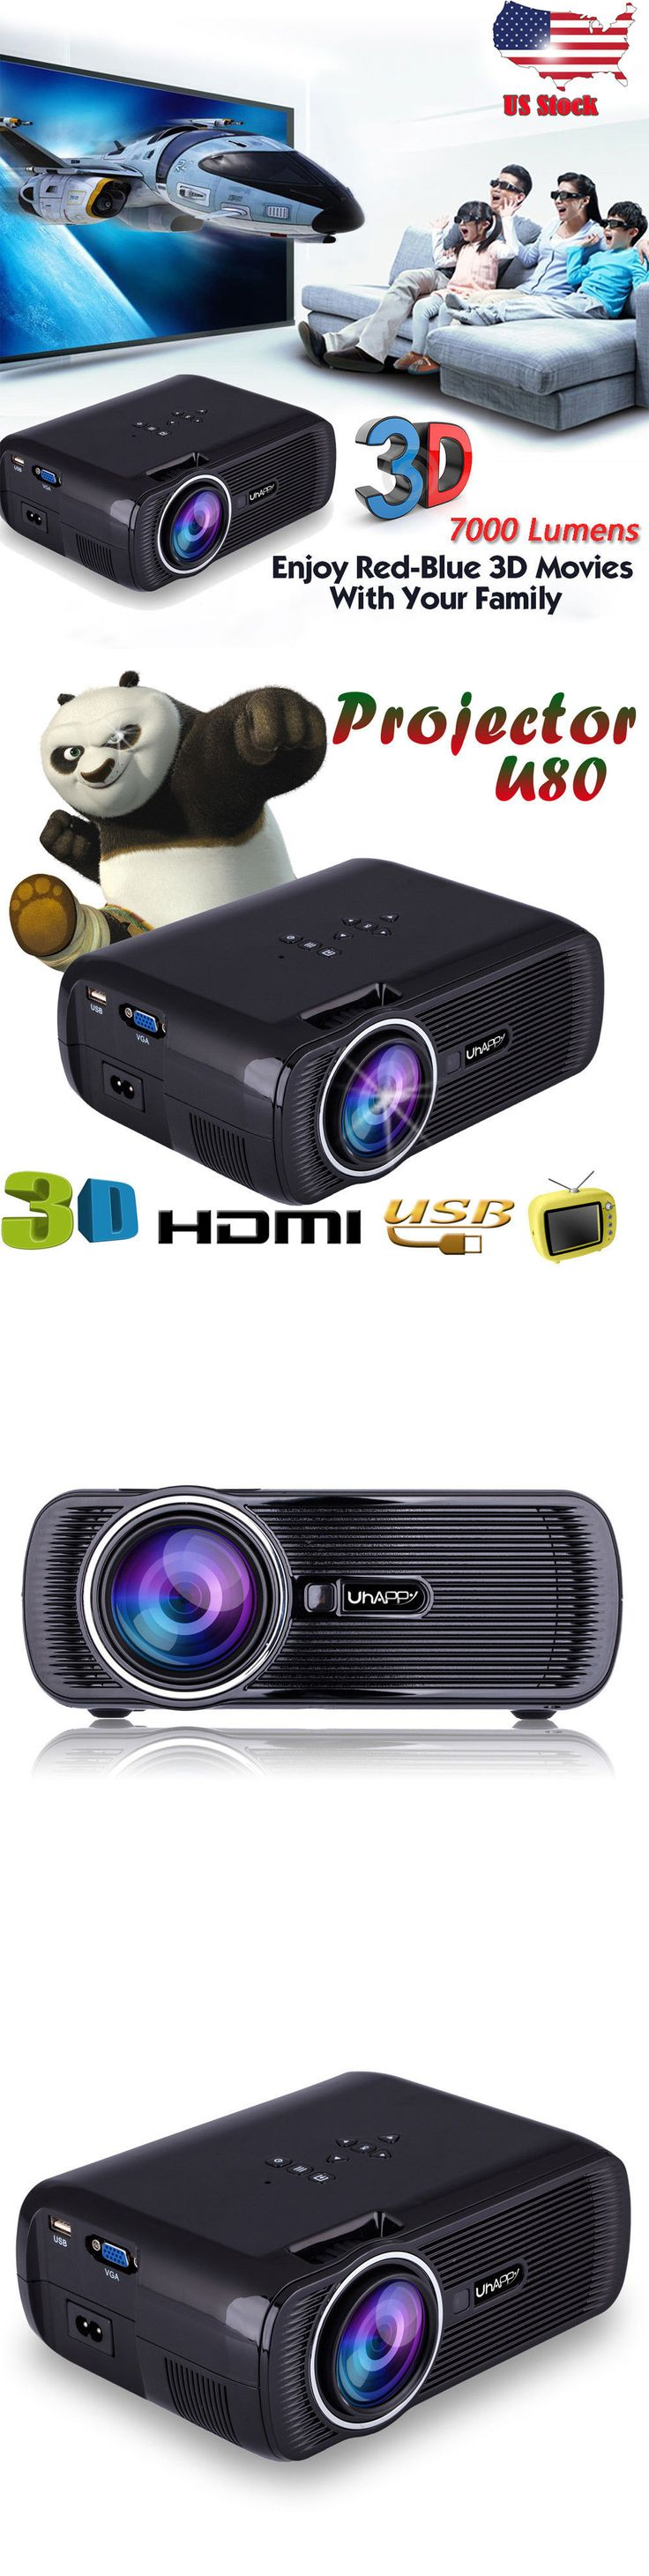 Home Theater Projectors: 7000 Lumens 1080P Hd Multimedia Portable Projector 3D Led Home Theater Cinema Us -> BUY IT NOW ONLY: $99.89 on eBay!